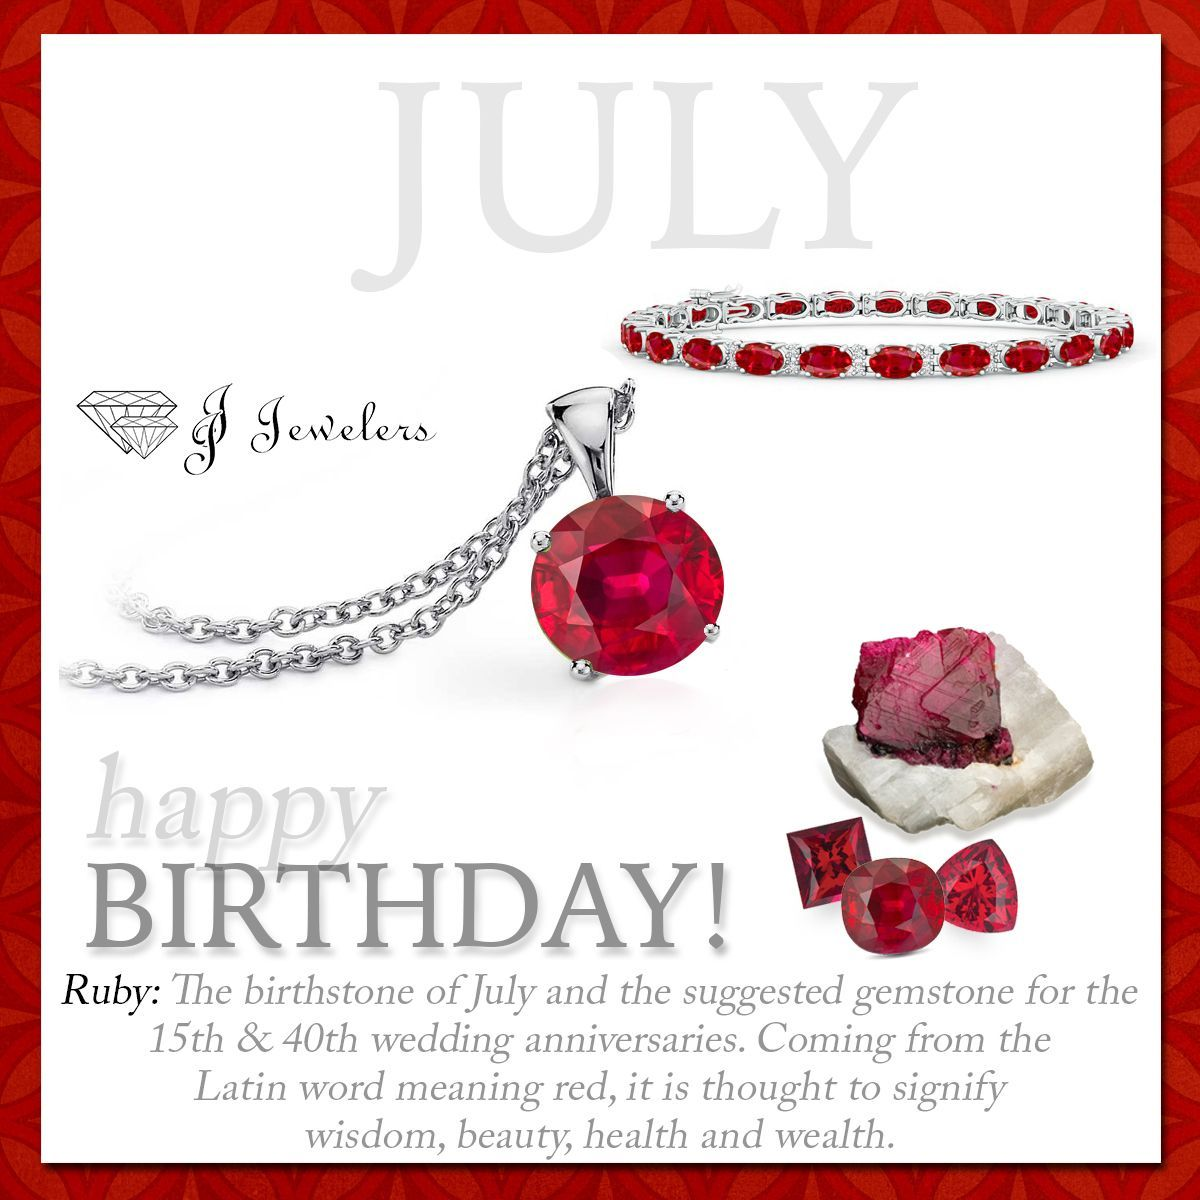 Happy Birthday July babies! The Ruby is your birthstone